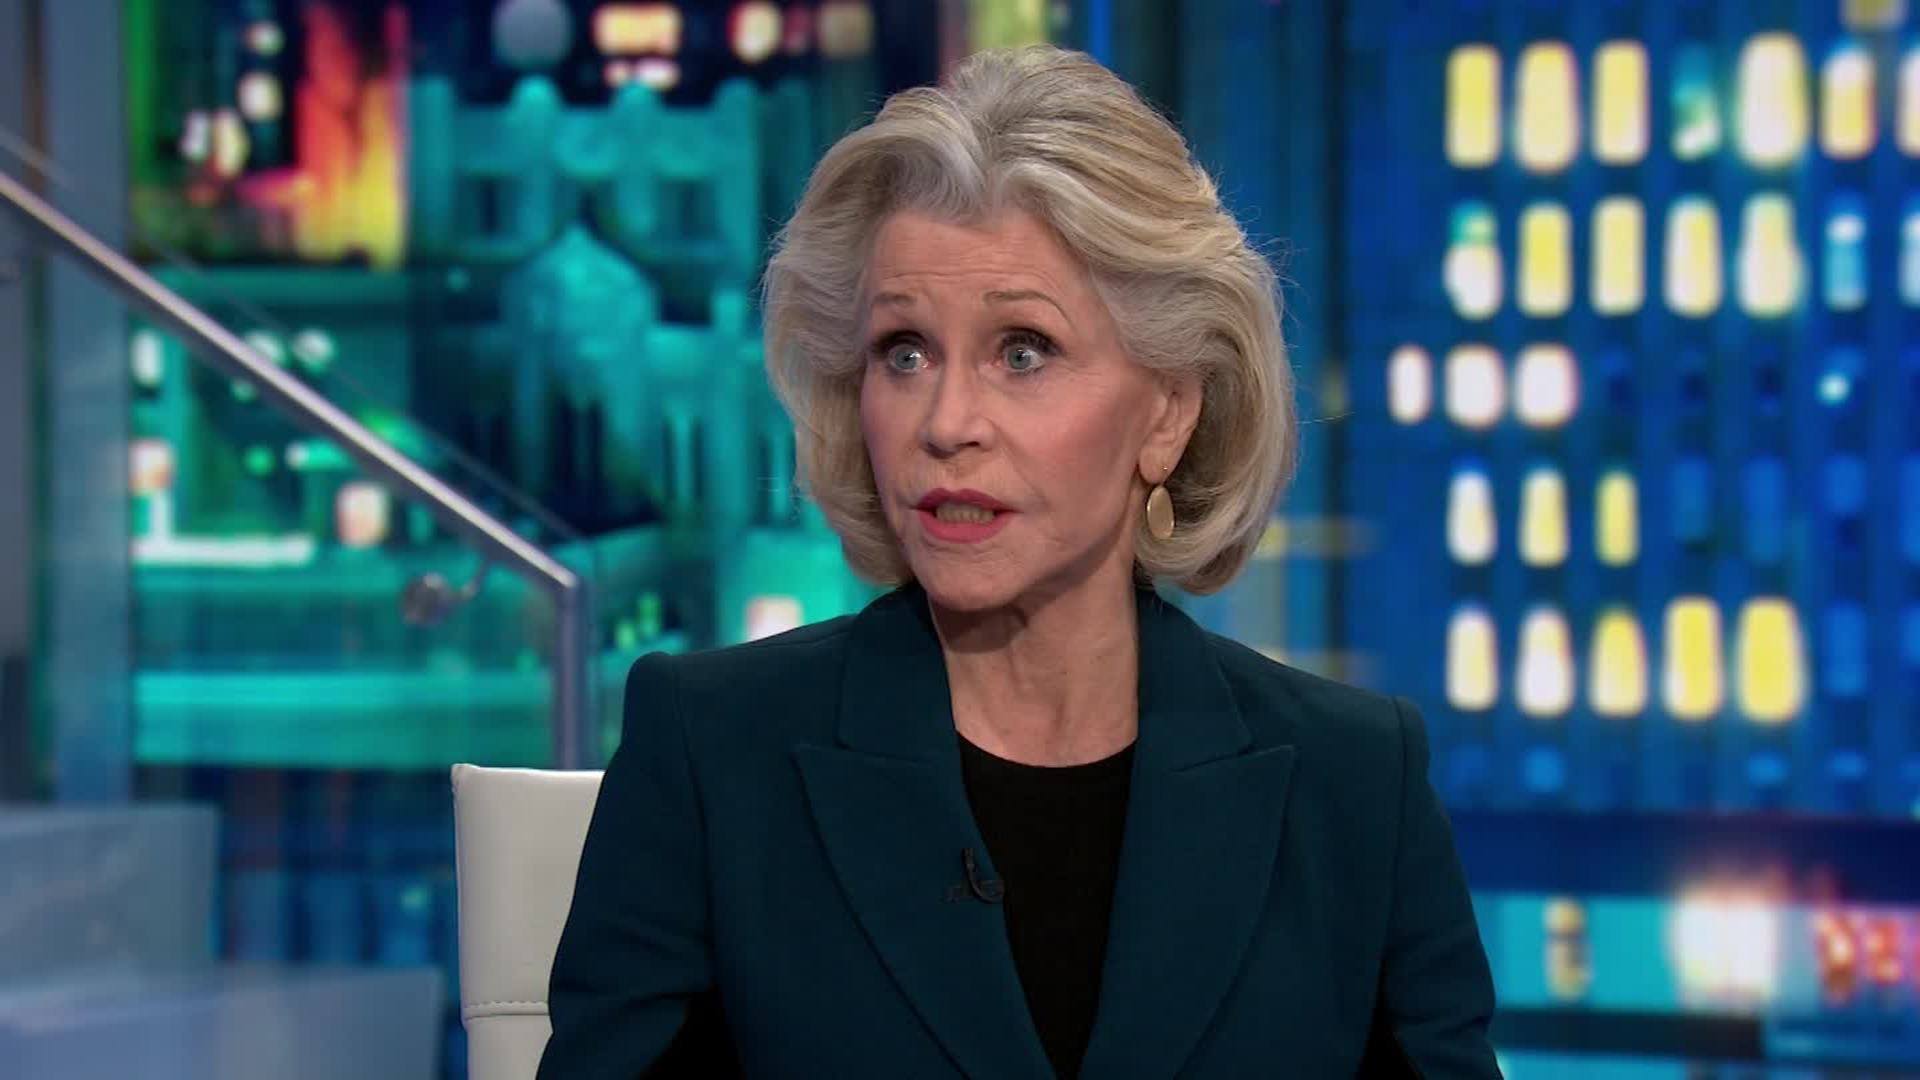 Jane Fonda says this is the new normal - CNN Video